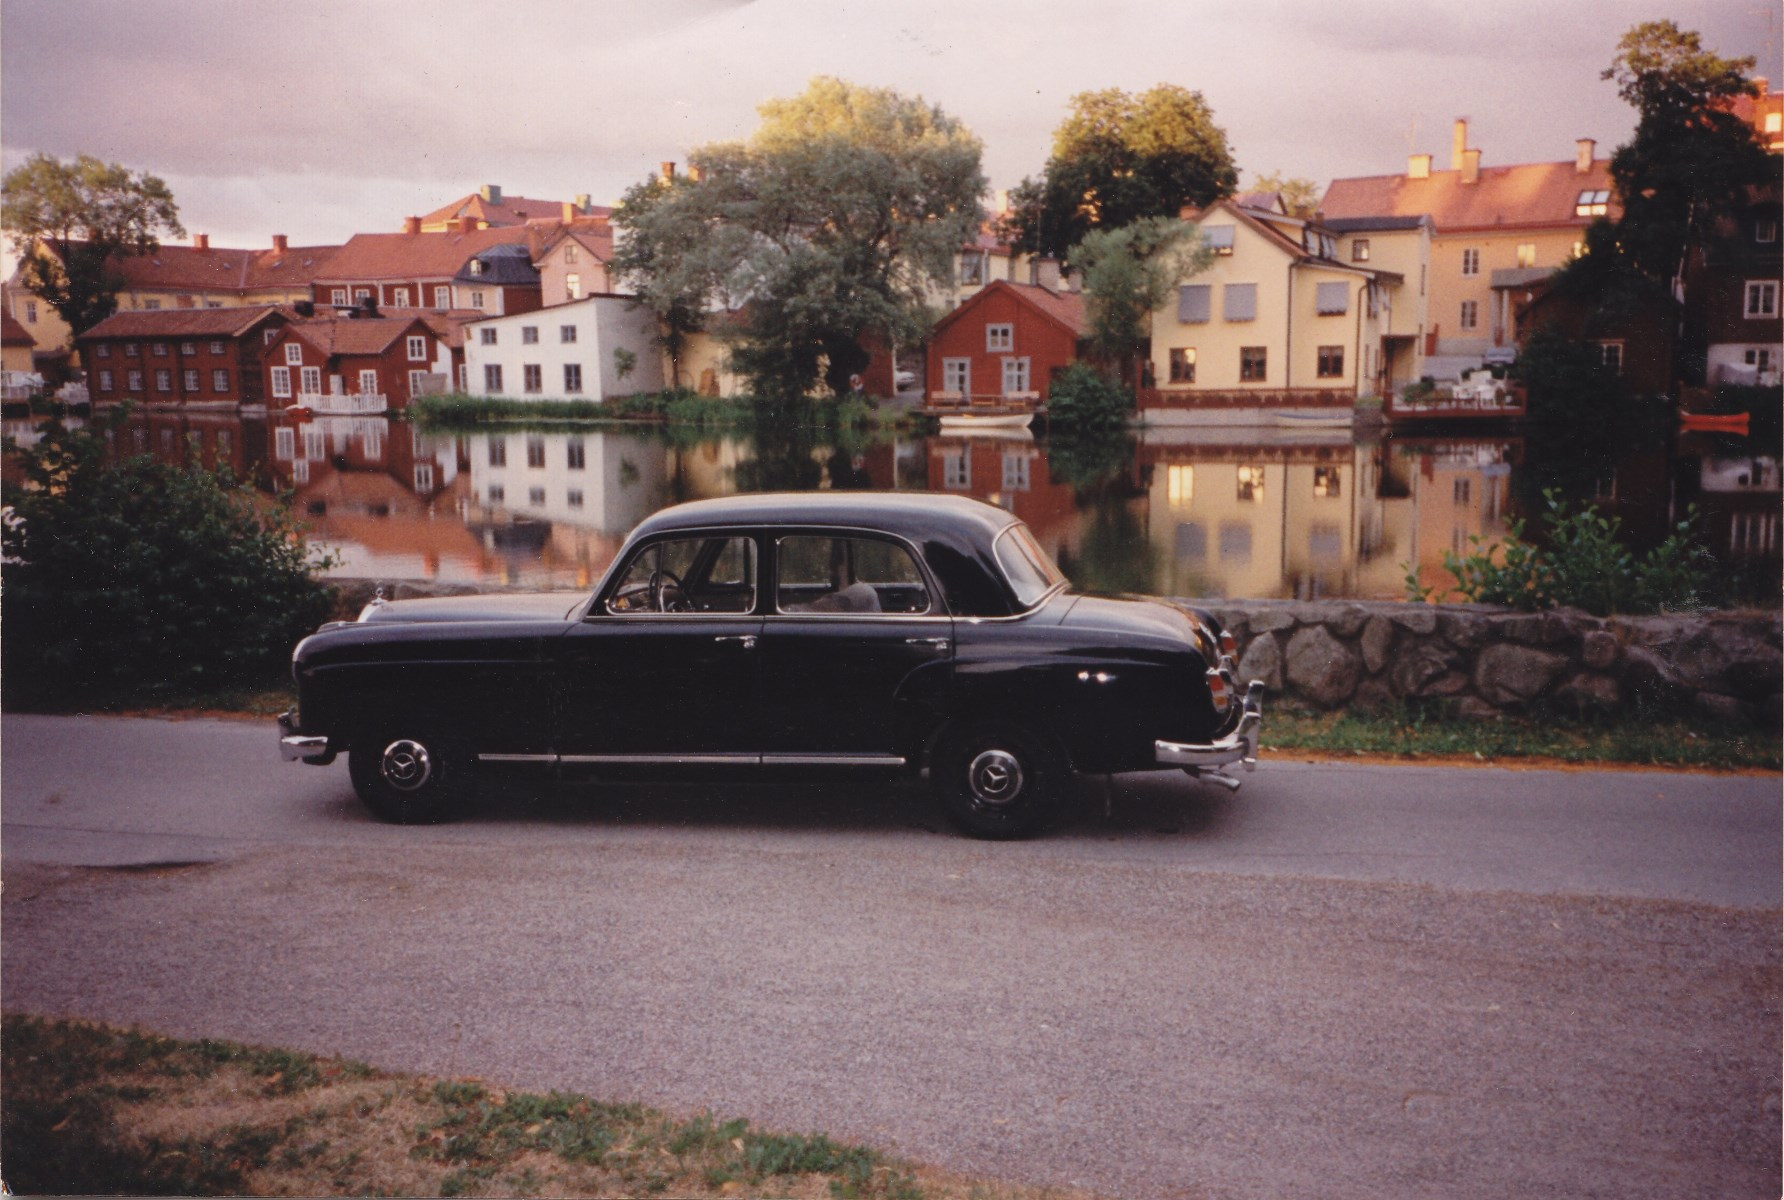 My Mercedes-Benz Typ 219 W105 parked in Eskilstuna, along the Eskilstunaån, the rivver passing the city